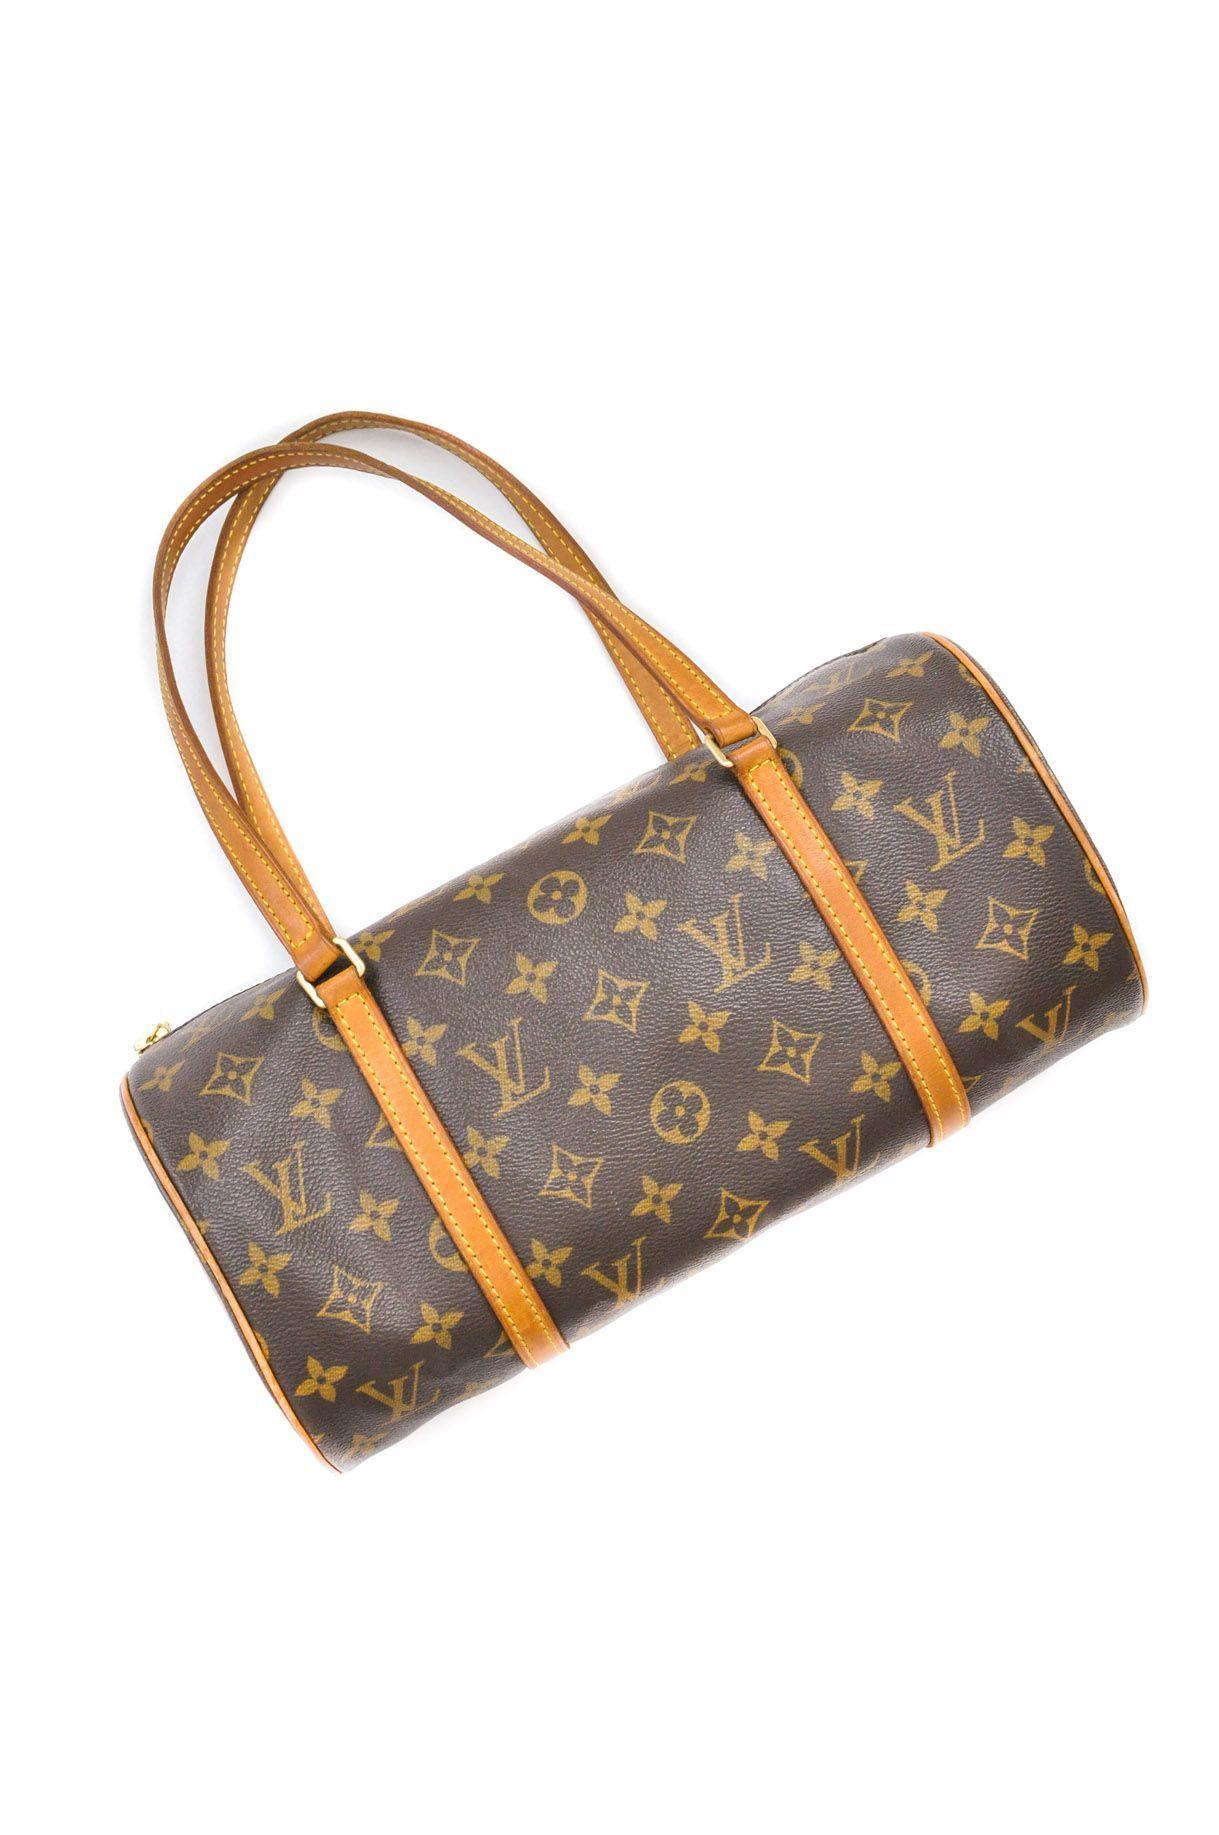 Louis Vuitton Papillon 30 Handbag